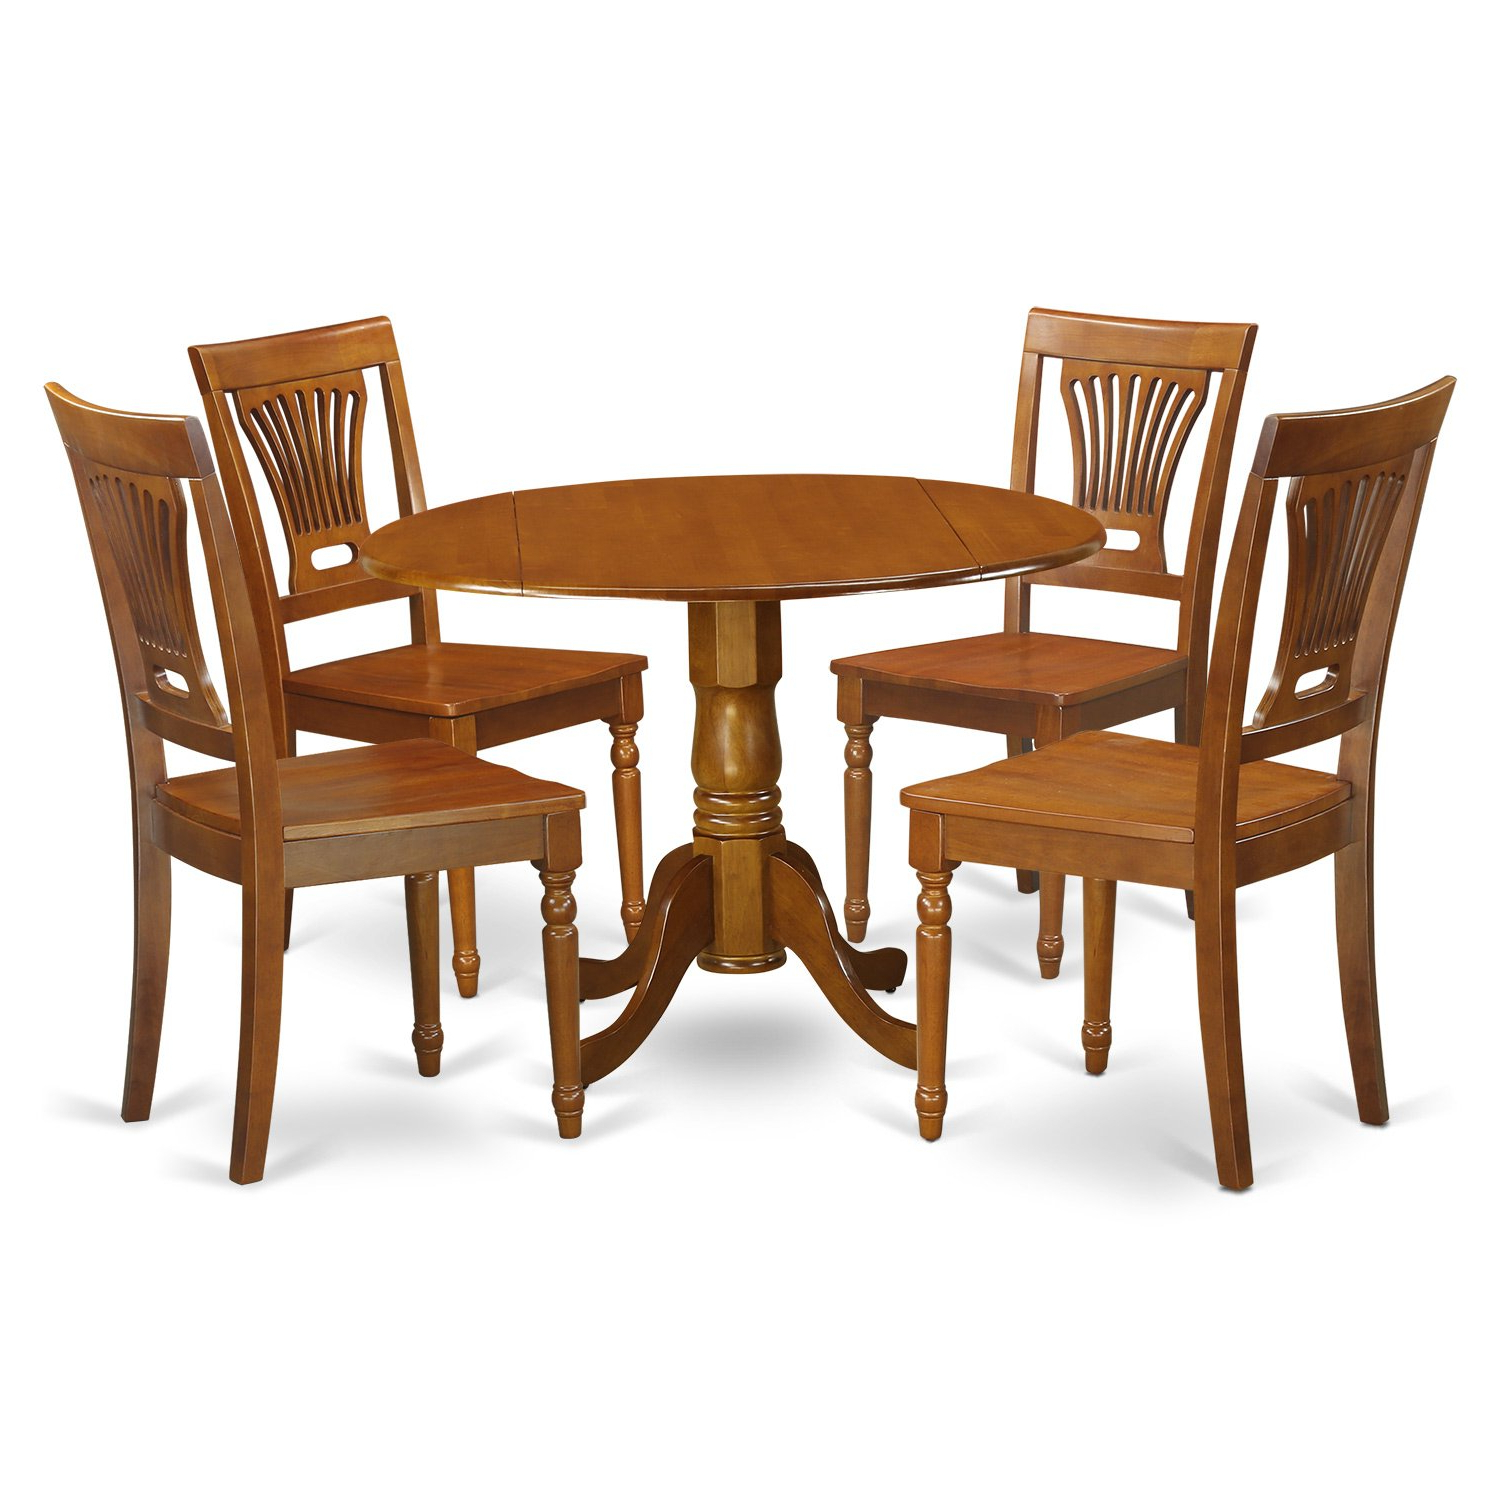 Trendy East West Furniture Dlpl5 Sbr W 5 Piece Kitchen Nook Dining Table Set, Saddle Brown Finish Within 5 Piece Breakfast Nook Dining Sets (View 19 of 20)